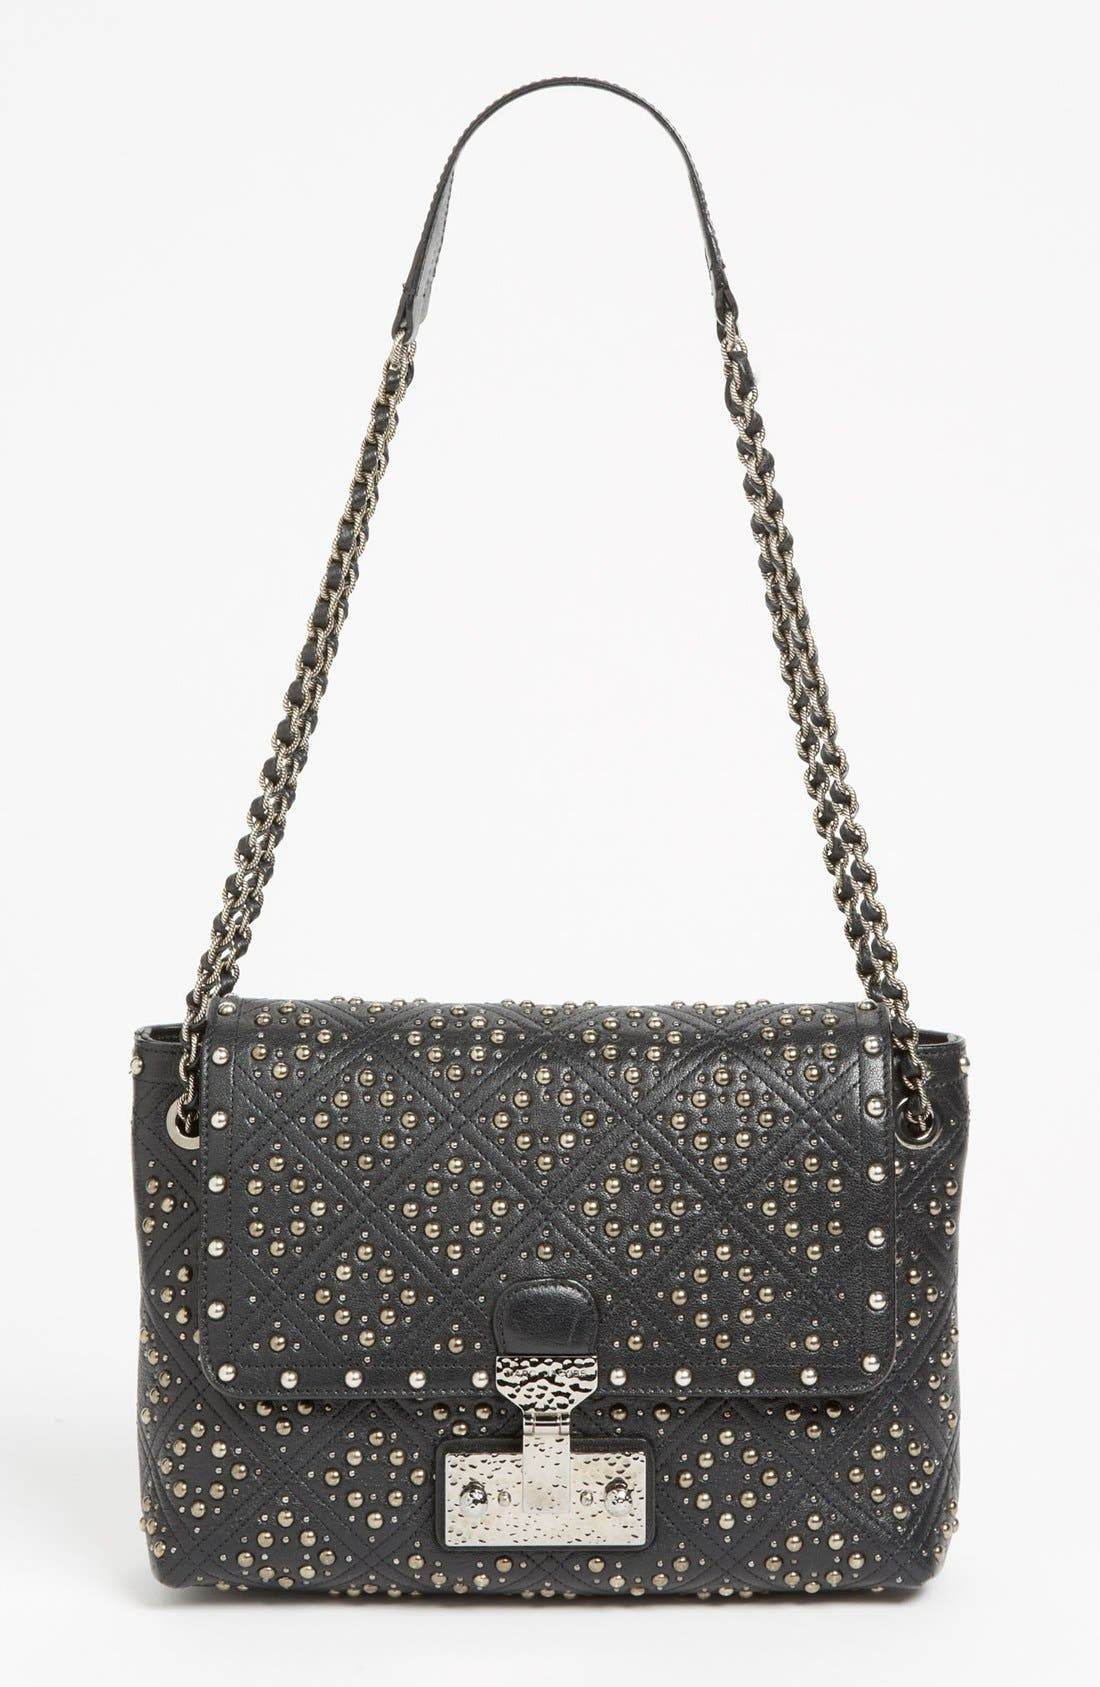 'Baroque Studs Single - Large' Leather Crossbody Bag,                         Main,                         color, Black/Antique Silver